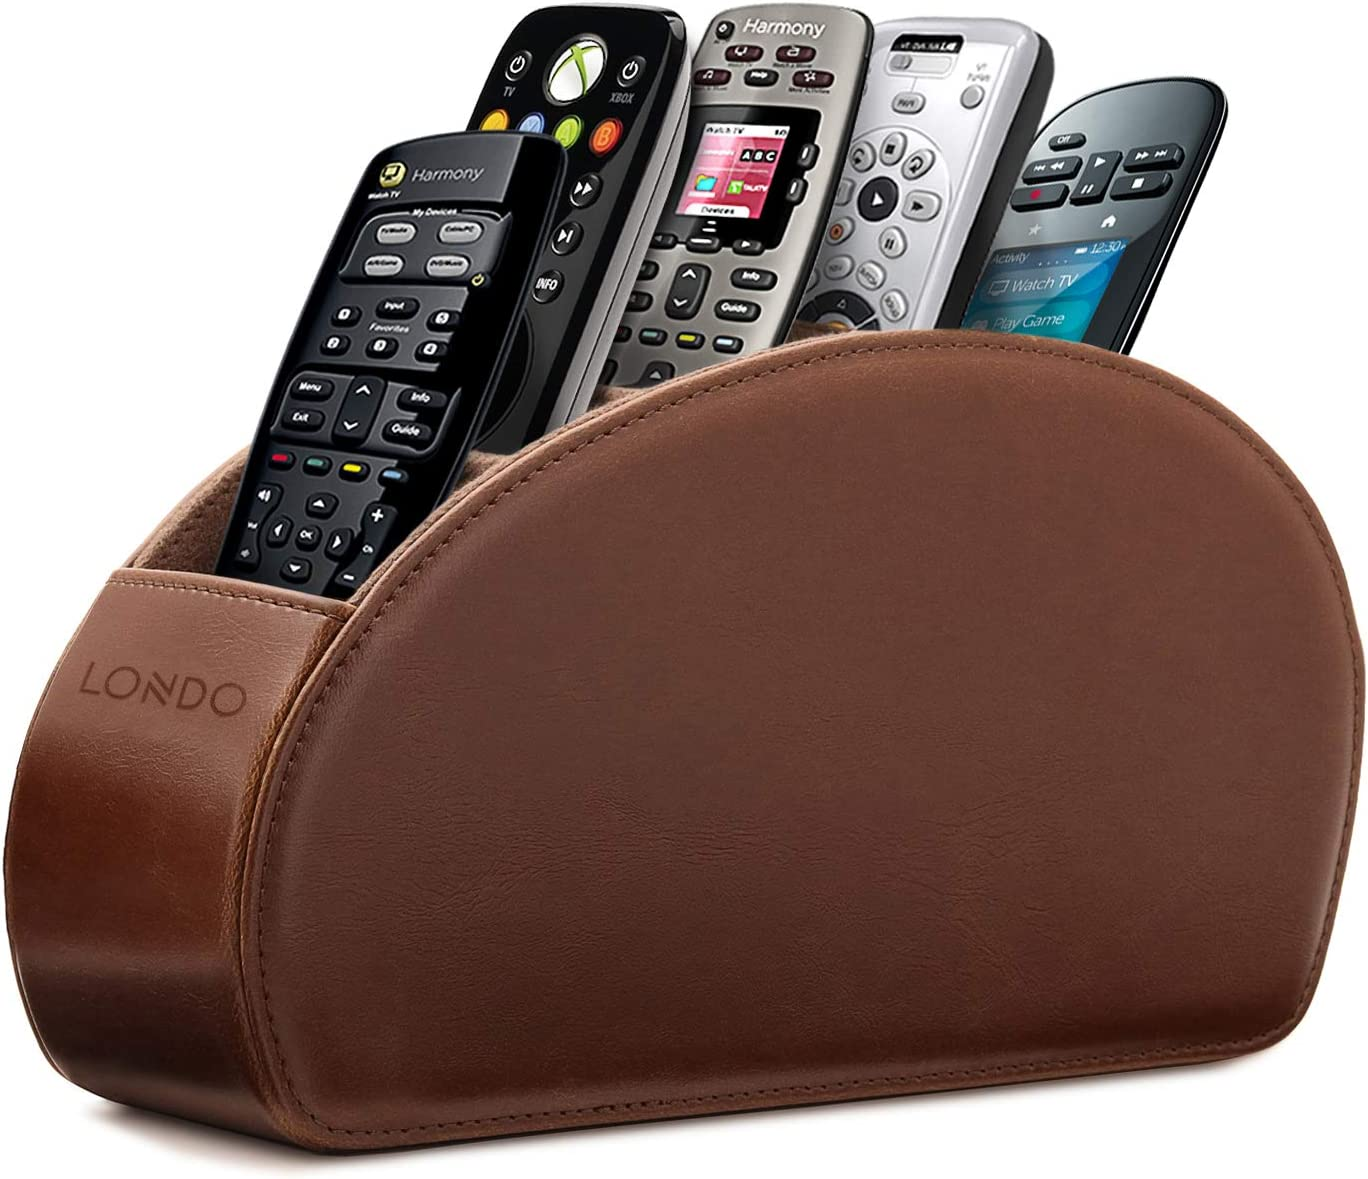 Londo Leather Remote Control Holder Organizer with Suede Lining for DVD Blu-ray TV Roku or Apple TV Remotes (Leather, Dark Brown)